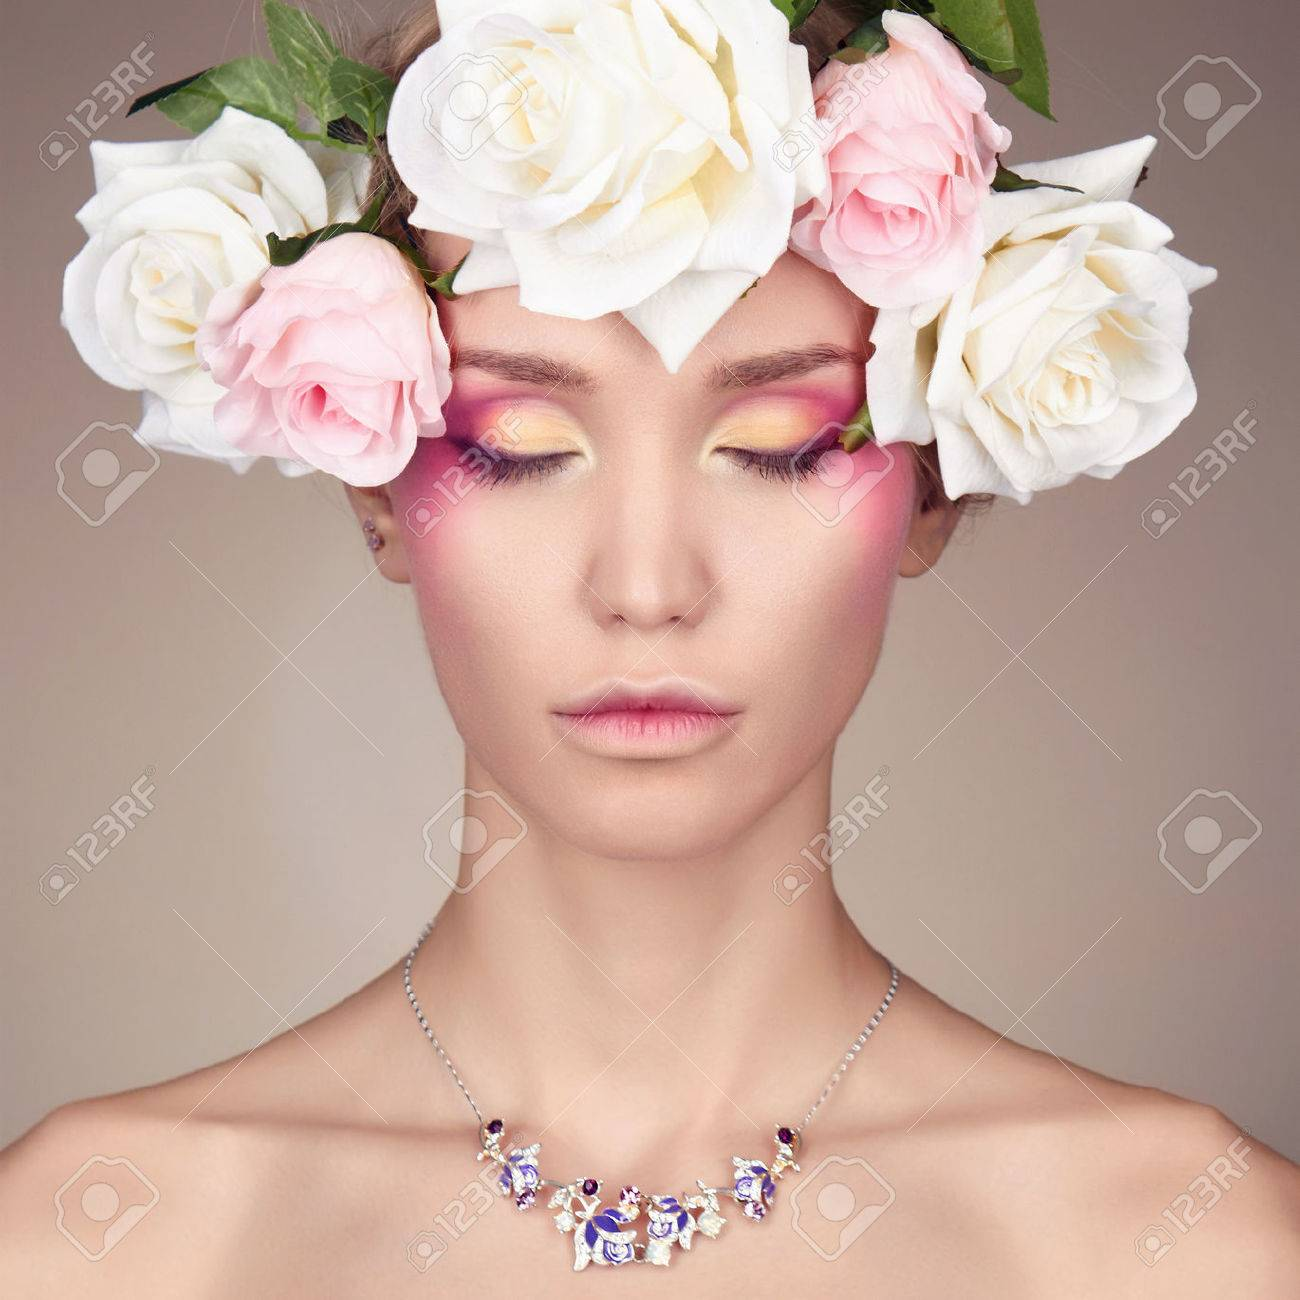 Young woman with flowers crown beauty model girlautiful girl stock photo young woman with flowers crown beauty model girlautiful girl with flowers on her headofessional make up izmirmasajfo